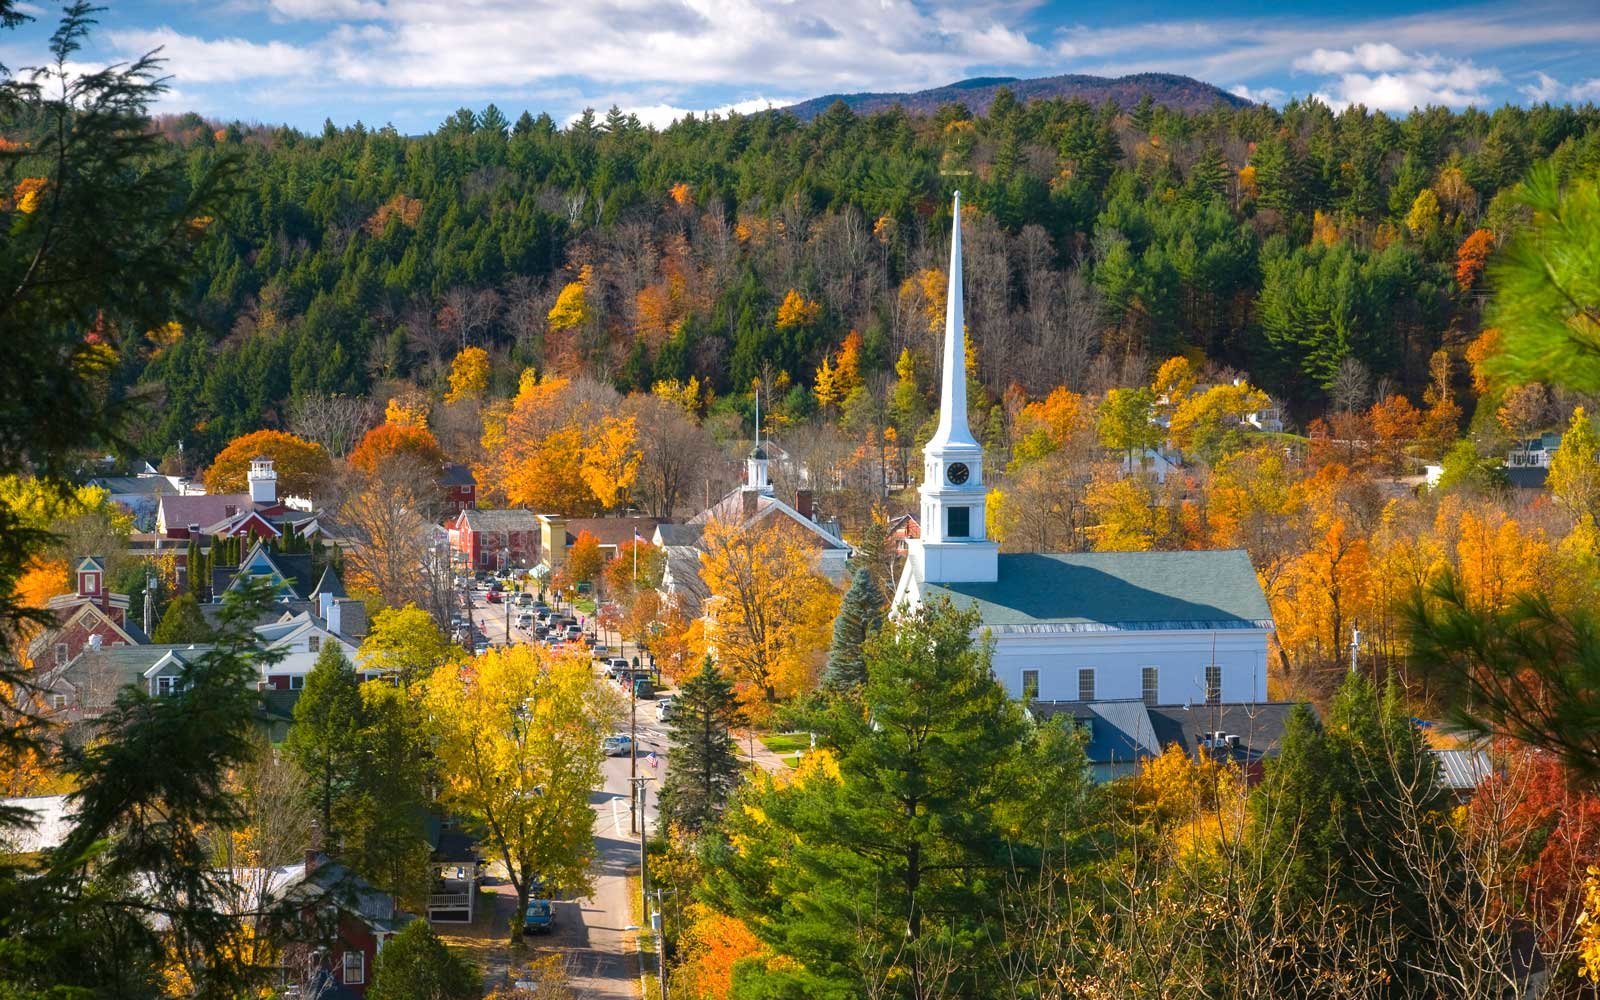 Fall in Stowe, Vermont